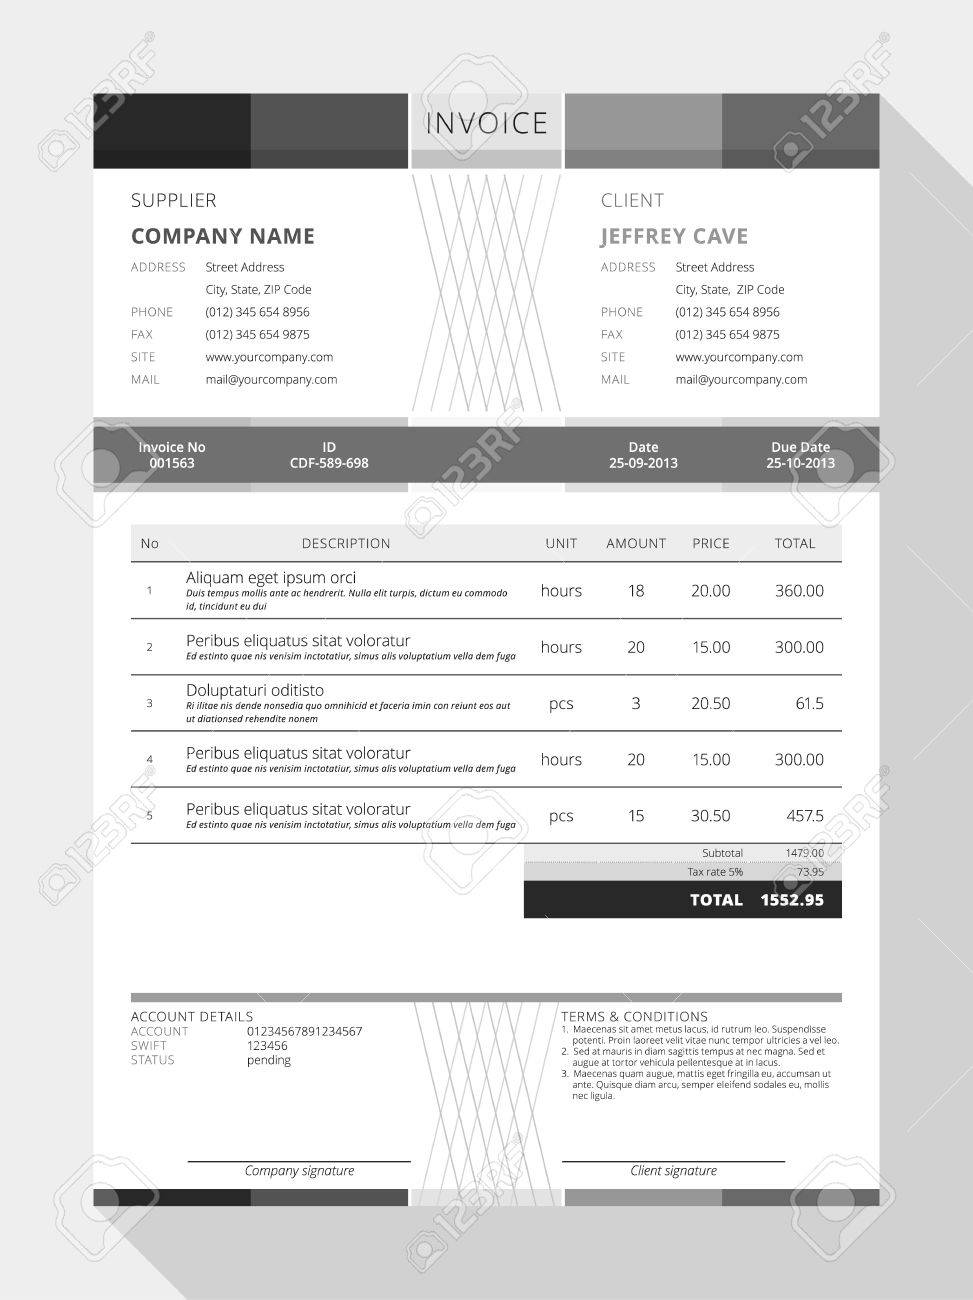 Occupyhistoryus  Gorgeous Design An Invoice  Professional Graphic Design Invoice  With Glamorous Vector Customizable Invoice Form Template Design Vector   Design An Invoice With Amazing Msrp Invoice Also Invoice Expert Review In Addition Invoices In Excel And Invoice Defined As Well As How To Write An Invoice Template Additionally Invoice Free Software From Happytomco With Occupyhistoryus  Glamorous Design An Invoice  Professional Graphic Design Invoice  With Amazing Vector Customizable Invoice Form Template Design Vector   Design An Invoice And Gorgeous Msrp Invoice Also Invoice Expert Review In Addition Invoices In Excel From Happytomco